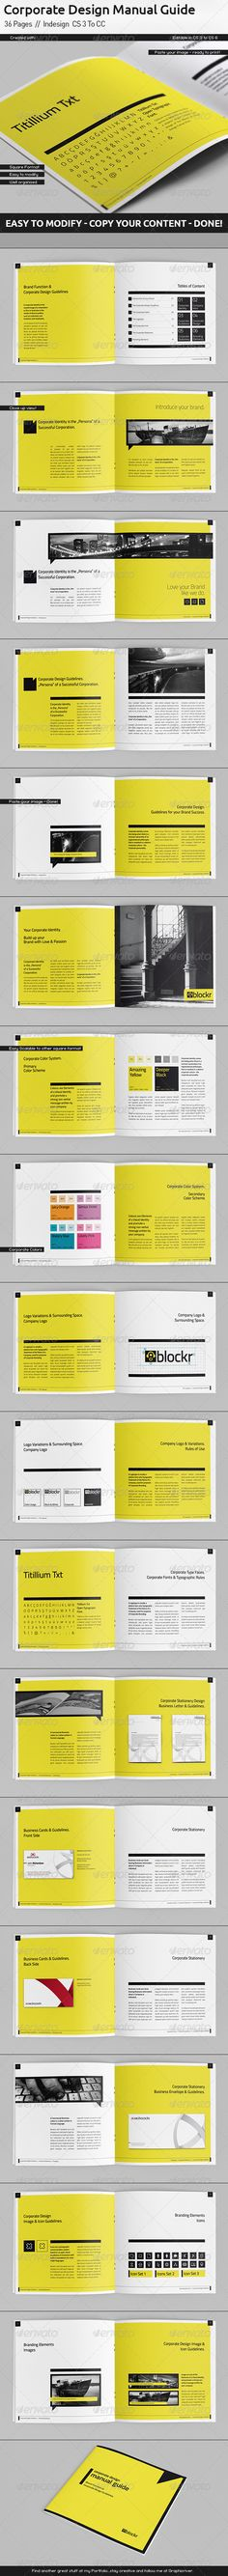 Corporate Design Manual Guide Square // 36 Pages Corporate Brochure Template by egotype. Booklet Design, Book Design Layout, Graphic Design Layouts, Print Layout, Page Design, Graphic Design Inspiration, Corporate Identity Design, Branding Design, Corporate Brochure